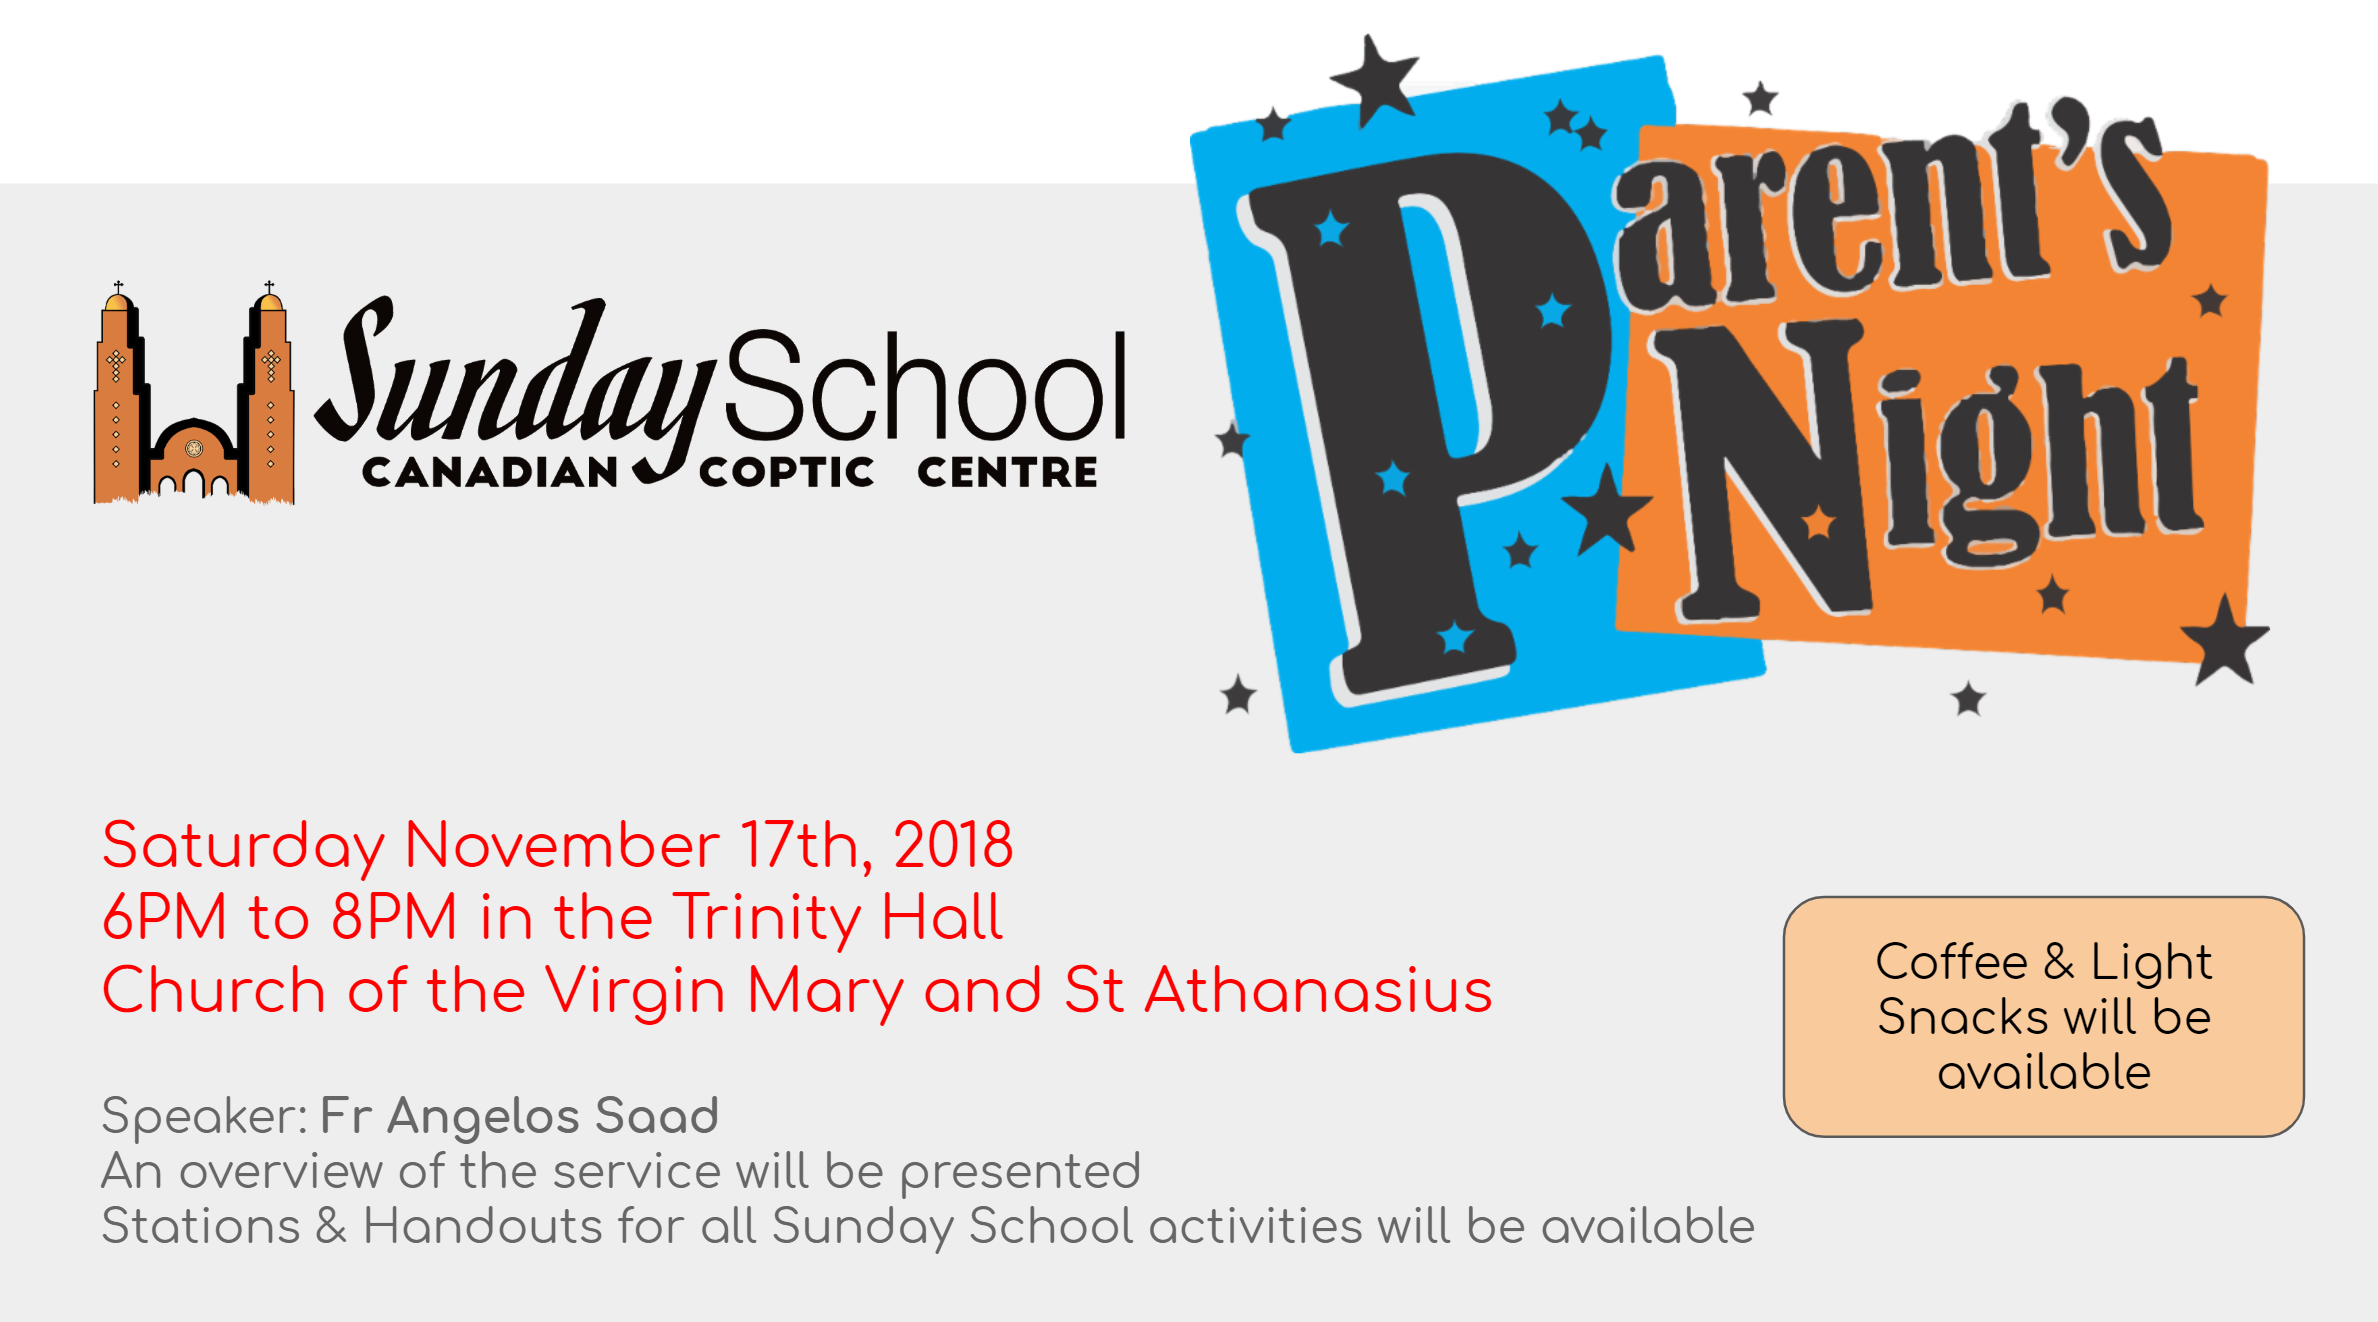 (Canceled) Sunday School Parents' Night 2018 @ Trinity Hall, VMSA